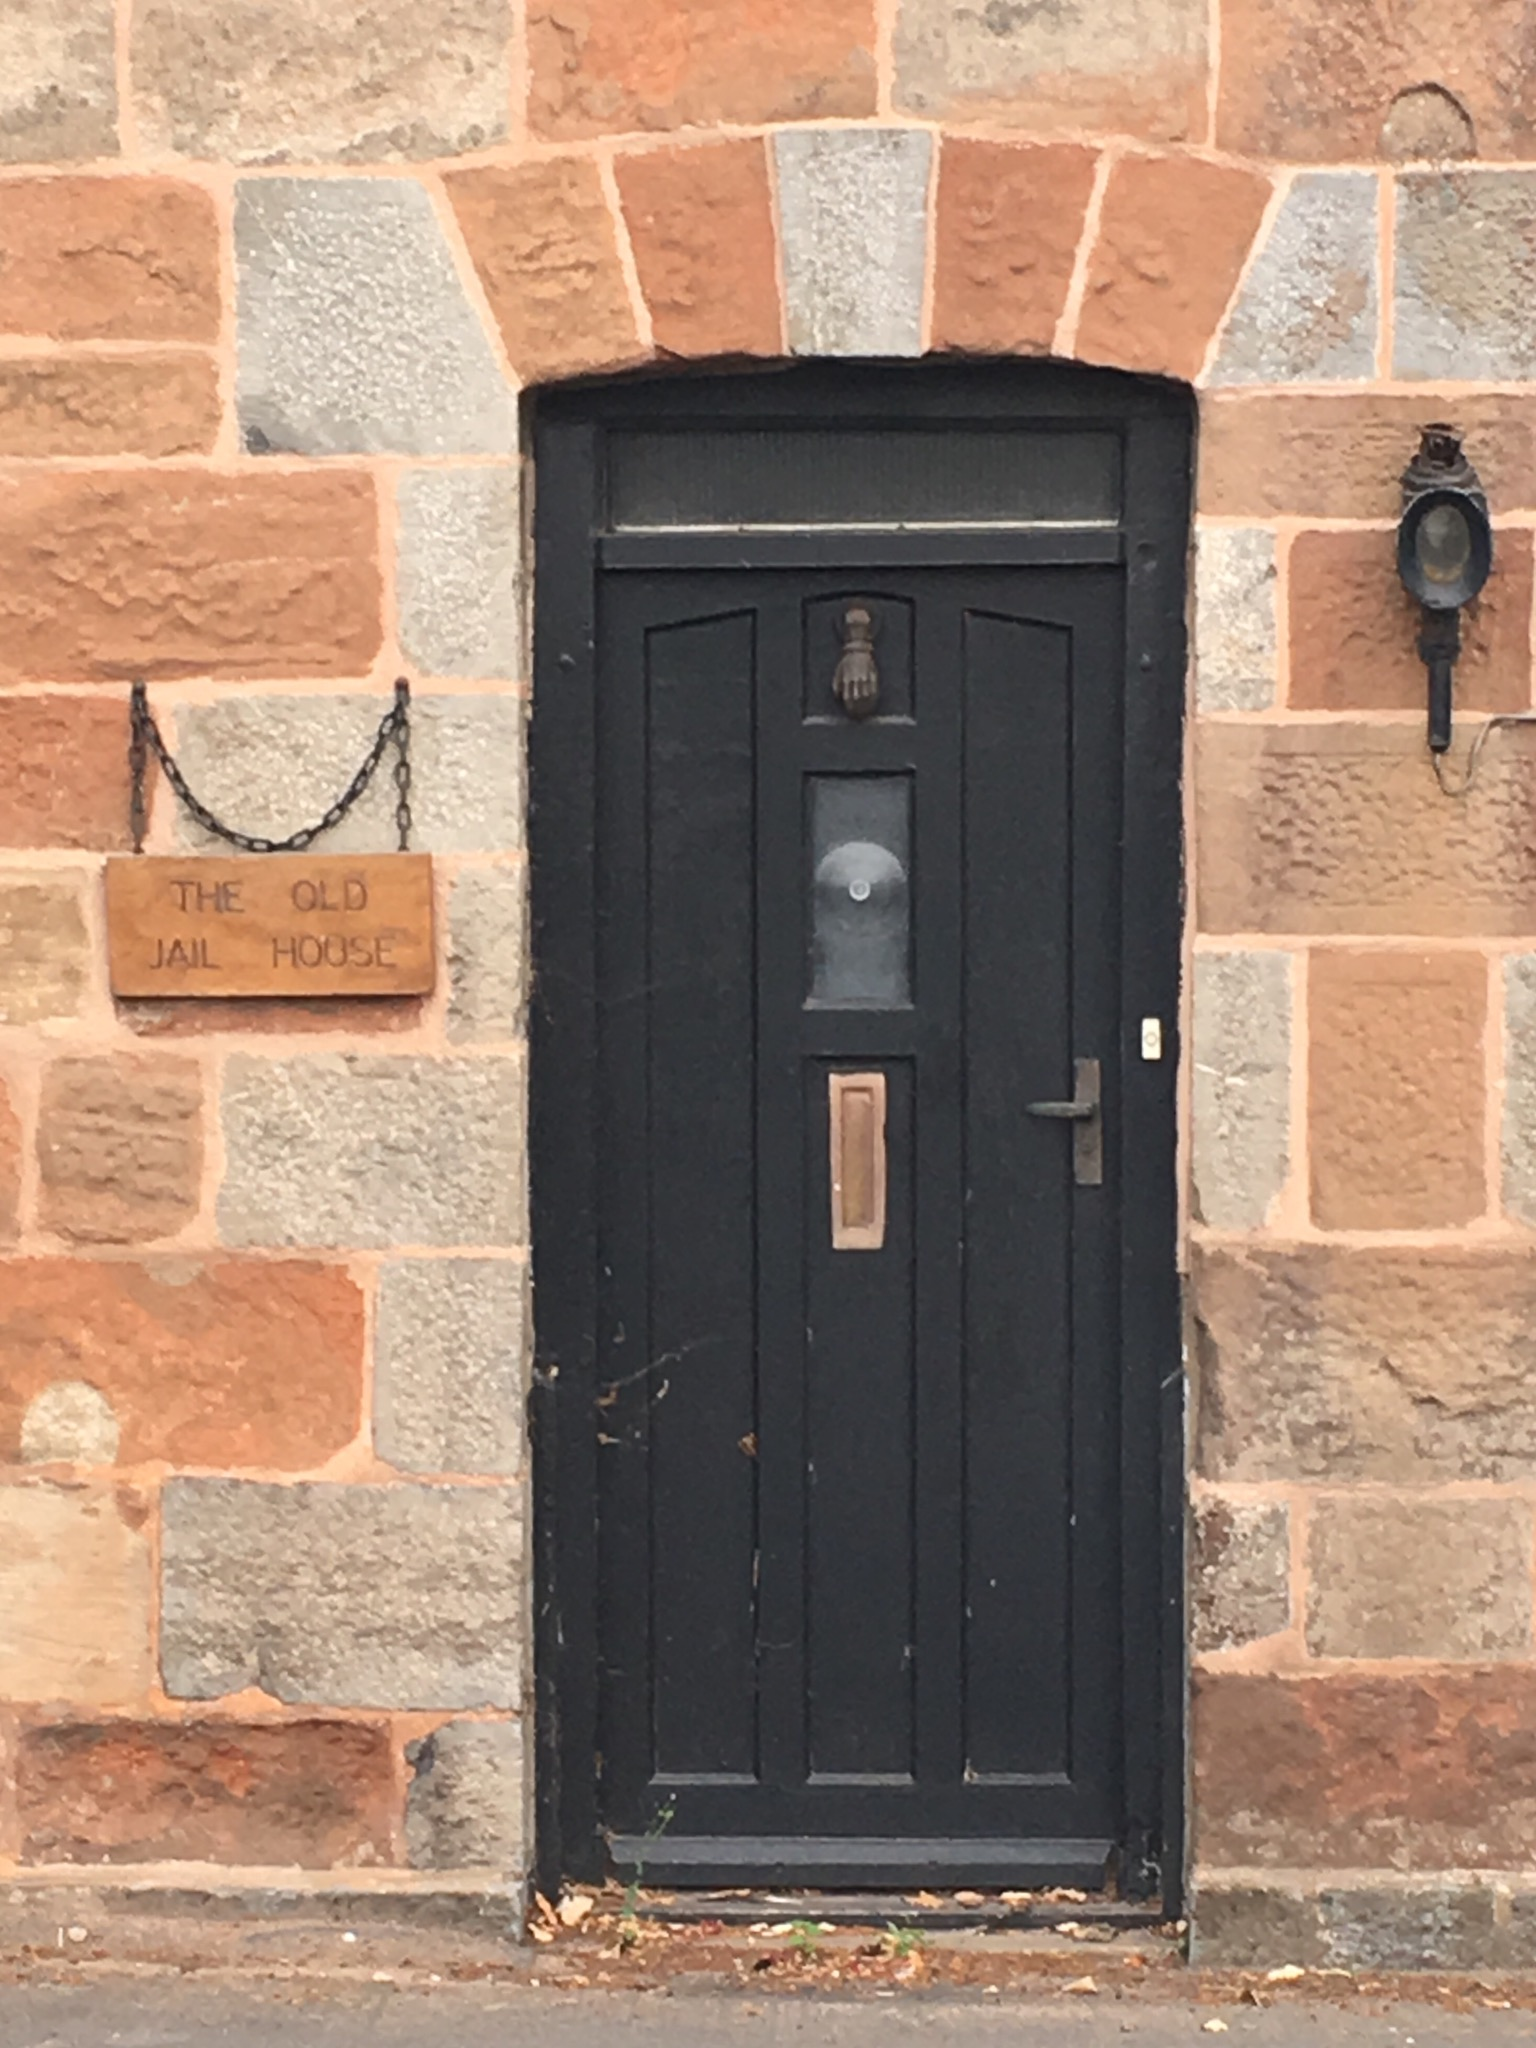 Close up of entrance with plaque, 'The Old Jail House'